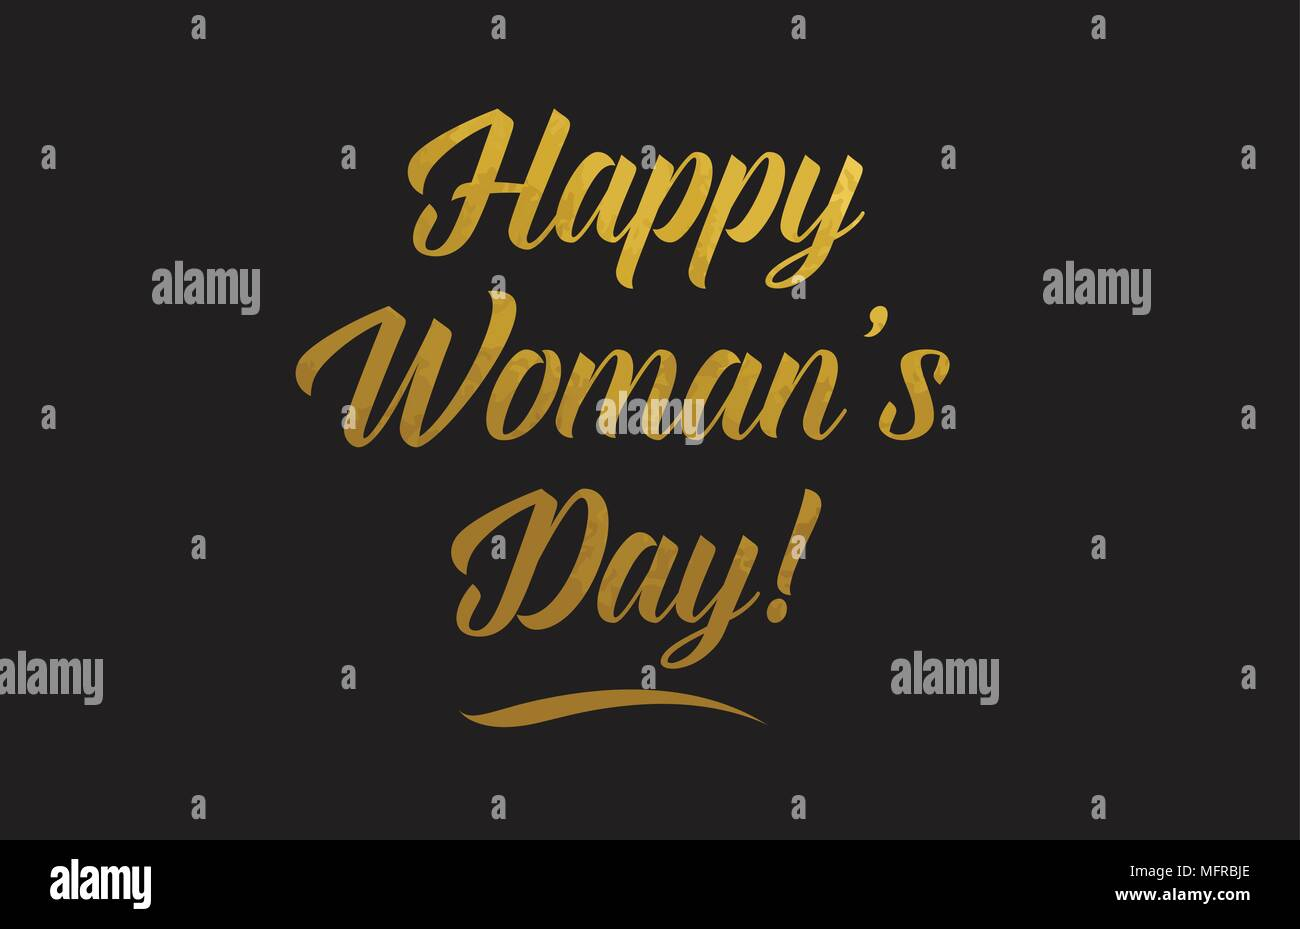 Happy Womans Day Or Word Texte Texture Convient Pour Carte De Visite Brochure Ou Typographie Design